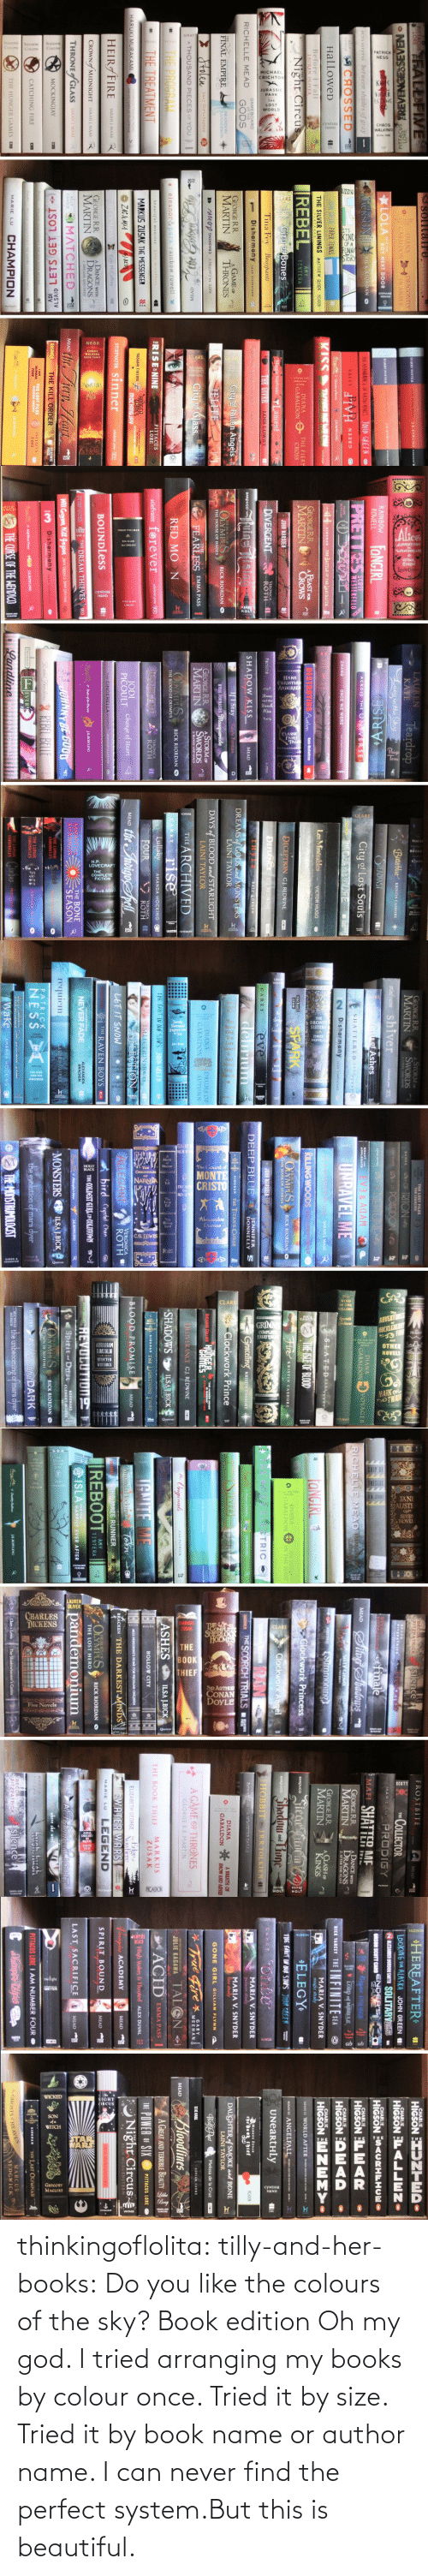 A Game of Thrones: NESS  solitaire, MAN.  PITTACUS  LORE  FALL FIVE  HARRY POTTER  de ly Helle  J.K.ROWLENG ra  DRAGONFLY  IN AMBER  DIANA  PITTACUS REVENGESSEVEN O  *LOLA OY NEXT DOOR  LORE  GABALDON  and the  J.K.ROWLING r  HARRY POTTER  RUTA SEPETYS between shades of gray  JACKSON  ERICK RIORDAN S  AN ABINDANCE OF KATHERINES JOHN GREEN @  speak  9CHOSSED  PIVH  SALLY  ALLY  CONDIE  GREEN  JK.ROWLING  HaLLoweD  JOHN GREEN PAPER TOWNS  KISS  TAPNICI INE WCM  THE SILVER LININGS MATTHEW QUICK MICADOR  Before I FalI  LAT .....  LAUREN OLIVER  Night Circus  REBEL  AMY  TINTERA  GARIANA  BALDON  THE FIERY  CROSS  LEIN MORGEN  City of Bones  Maggie Stiefvater Lanient  Tina Fey Bossypants  THE GIVER LOIS LOWRY  GAMEBOARD  OF THE  Disharmony  GIN OF NIGATIVLANE  LEAH GIARATANO  RICHELLE MEAD  GODS  GEORGE RR.  MARTIN  GAME oF  THRONES  City of Fallen Angels  FINAL EMPIRE  BRANDON  SANDERSON  ELITE  Jtolen  Lucy Christopher  KATE M.CAFFREY CRASHING Aown a  City of Glass  A THOUSAND PIECES OF YOU  MEAD  the Golorn Lity  O FRACTURED  THE PROGRAM  THE TREATMENT  eleanor& park rainbow rowell  ERISE NINE  PITTACUS  LORE  beautiful monster kate mcaffrey  MARKUS ZUSAK THE MESSENGER  SUZANME COLLINS a HUNGER  MOCHINGJAY  THE Ien dn  HARUKI MURAKAMI  ZAC& MIA  J-BETTS  HEIR FIRE  STIEFVATER Sinner  scholatie pres ID  SARAH I. MAAS  m cestasy Kate McCaffrey  DANCE WITH  DRAGONS  GEORGE RR.  CROWN of MIDNIGHT SARAH J. MAAS  MARTIN  I:DREAMS AND DUST  THRONEfGLASS  AlLr MATCHED  thr Tiery. Hurt  SARAH I. MAAS  CONDIE  MEAD  WineswovEL  MOCKINGJAY  ALSAID  DASHNER  THE KILL ORDER  DELACORTE  PRESS  ADI LETS GET LOST  IAM  THE LOST FILES  HIDDEN ENEMY  NUMBER  PITTACUS  CATCHING FIRE  FOUR  LORE  CHAMPION  THE HUNGER GAMES a  MARIE LU  JKROWLING   LAUREN  KATE  Teardrop  1143-A1  Luey inthe  Bitterblue  KRISTIN CASHORE  RAINBOW  ROWELL  FANGIRL  STEADFAST  ARISE  City of Lost Souls  ACROSS THE UNIVERSE  PRETTRES WESTERFELD  SCOTT  lsli THE DEAYEARE  HADIE  DUTKOSKI  ZHANG  ONCE WE WERE  